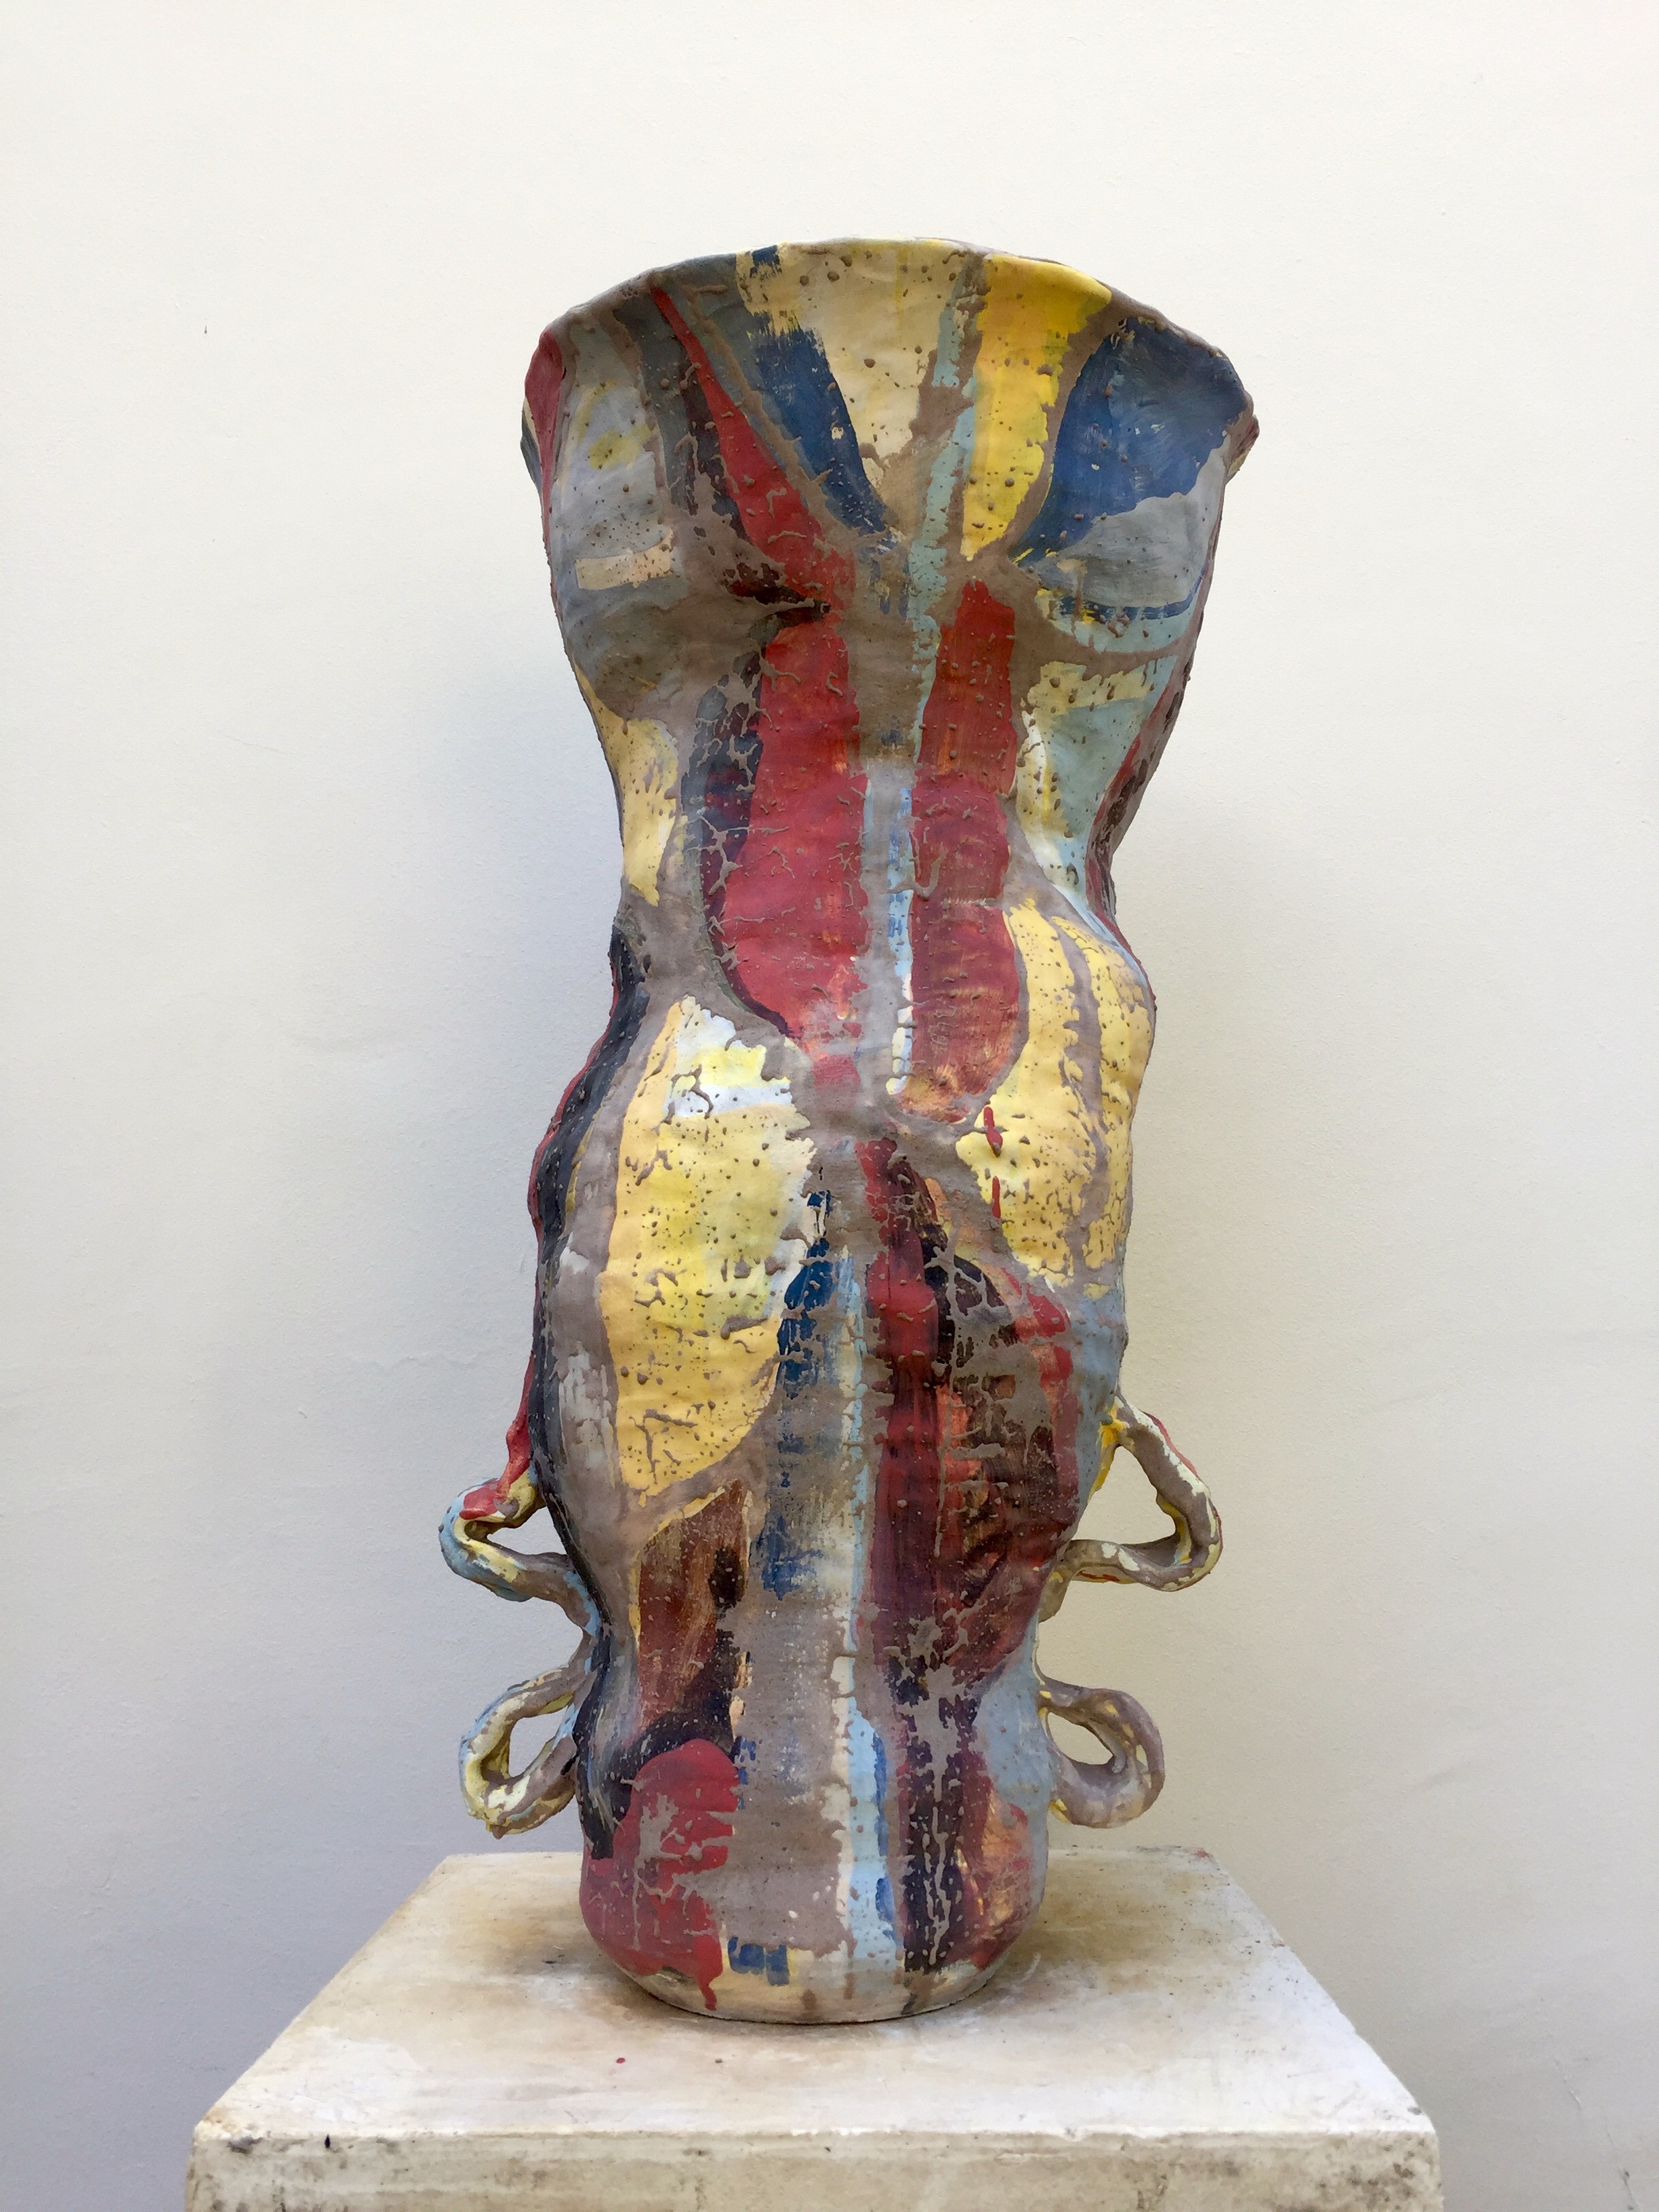 11 - Untitled, French Vessel #11, 2017  Glazed stoneware - Signed and dated  70 x 39 cm 27 x 15 inches Unique piece